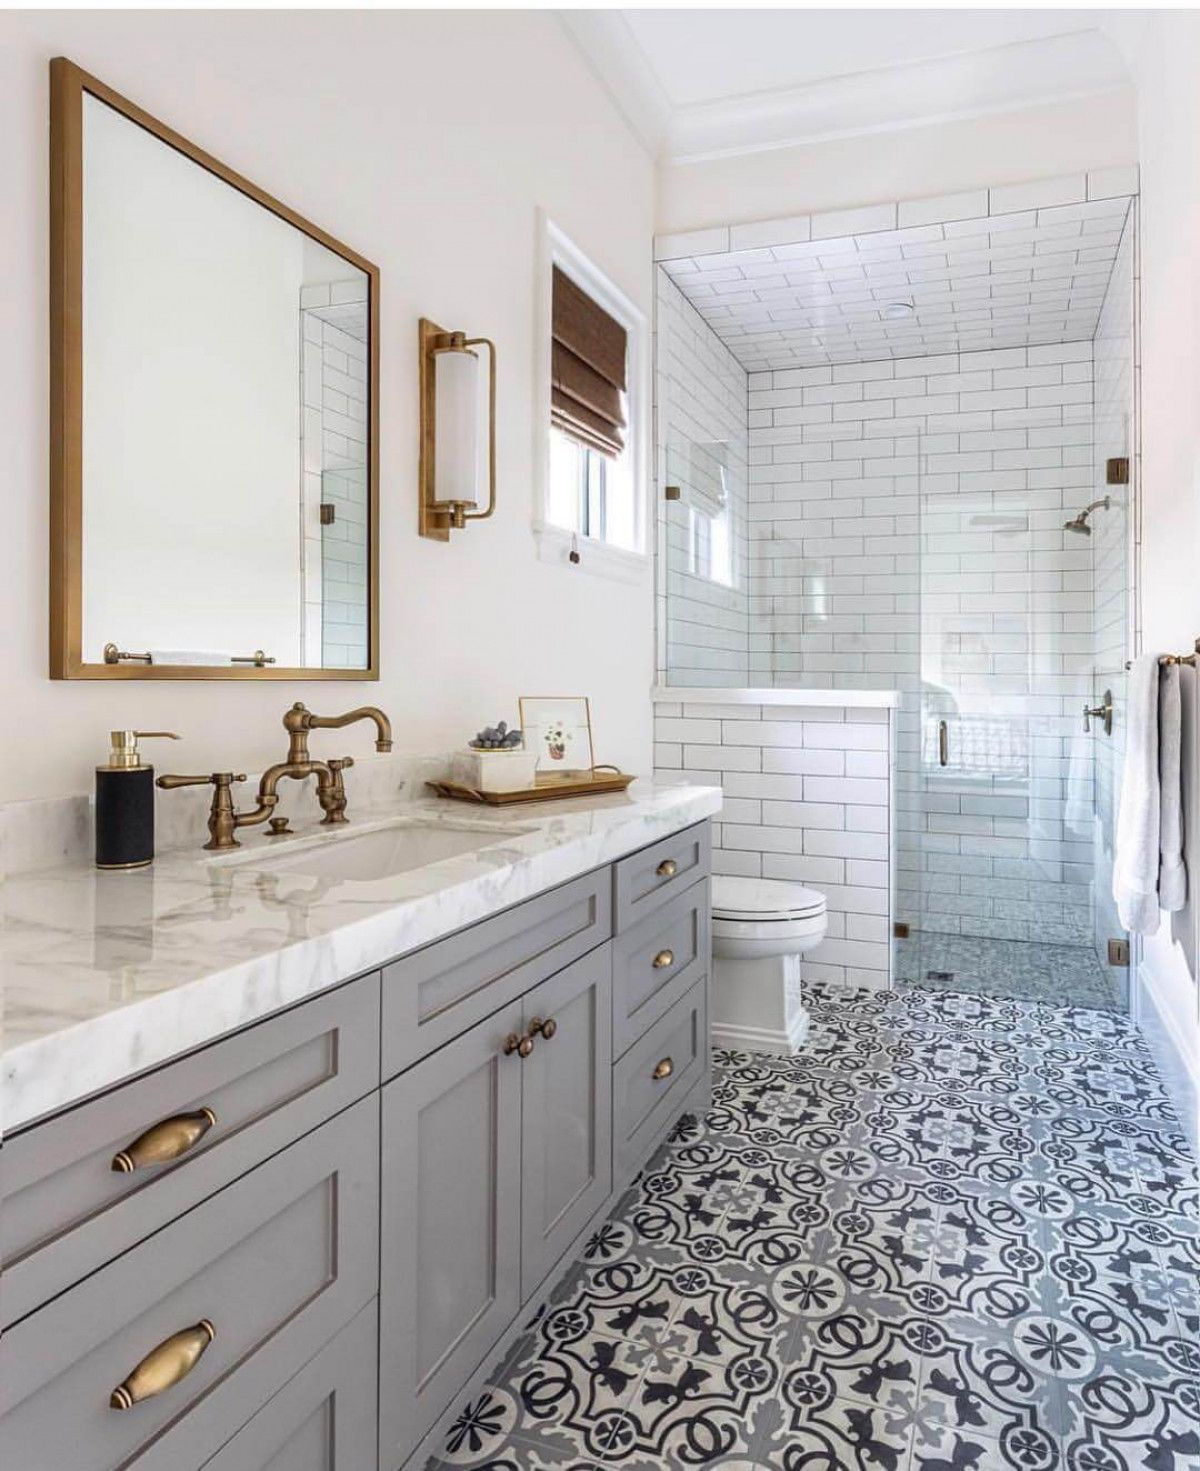 Small Bathroomdesign Ideas: 10 Inspirational Walk In Showers For Small Bathrooms